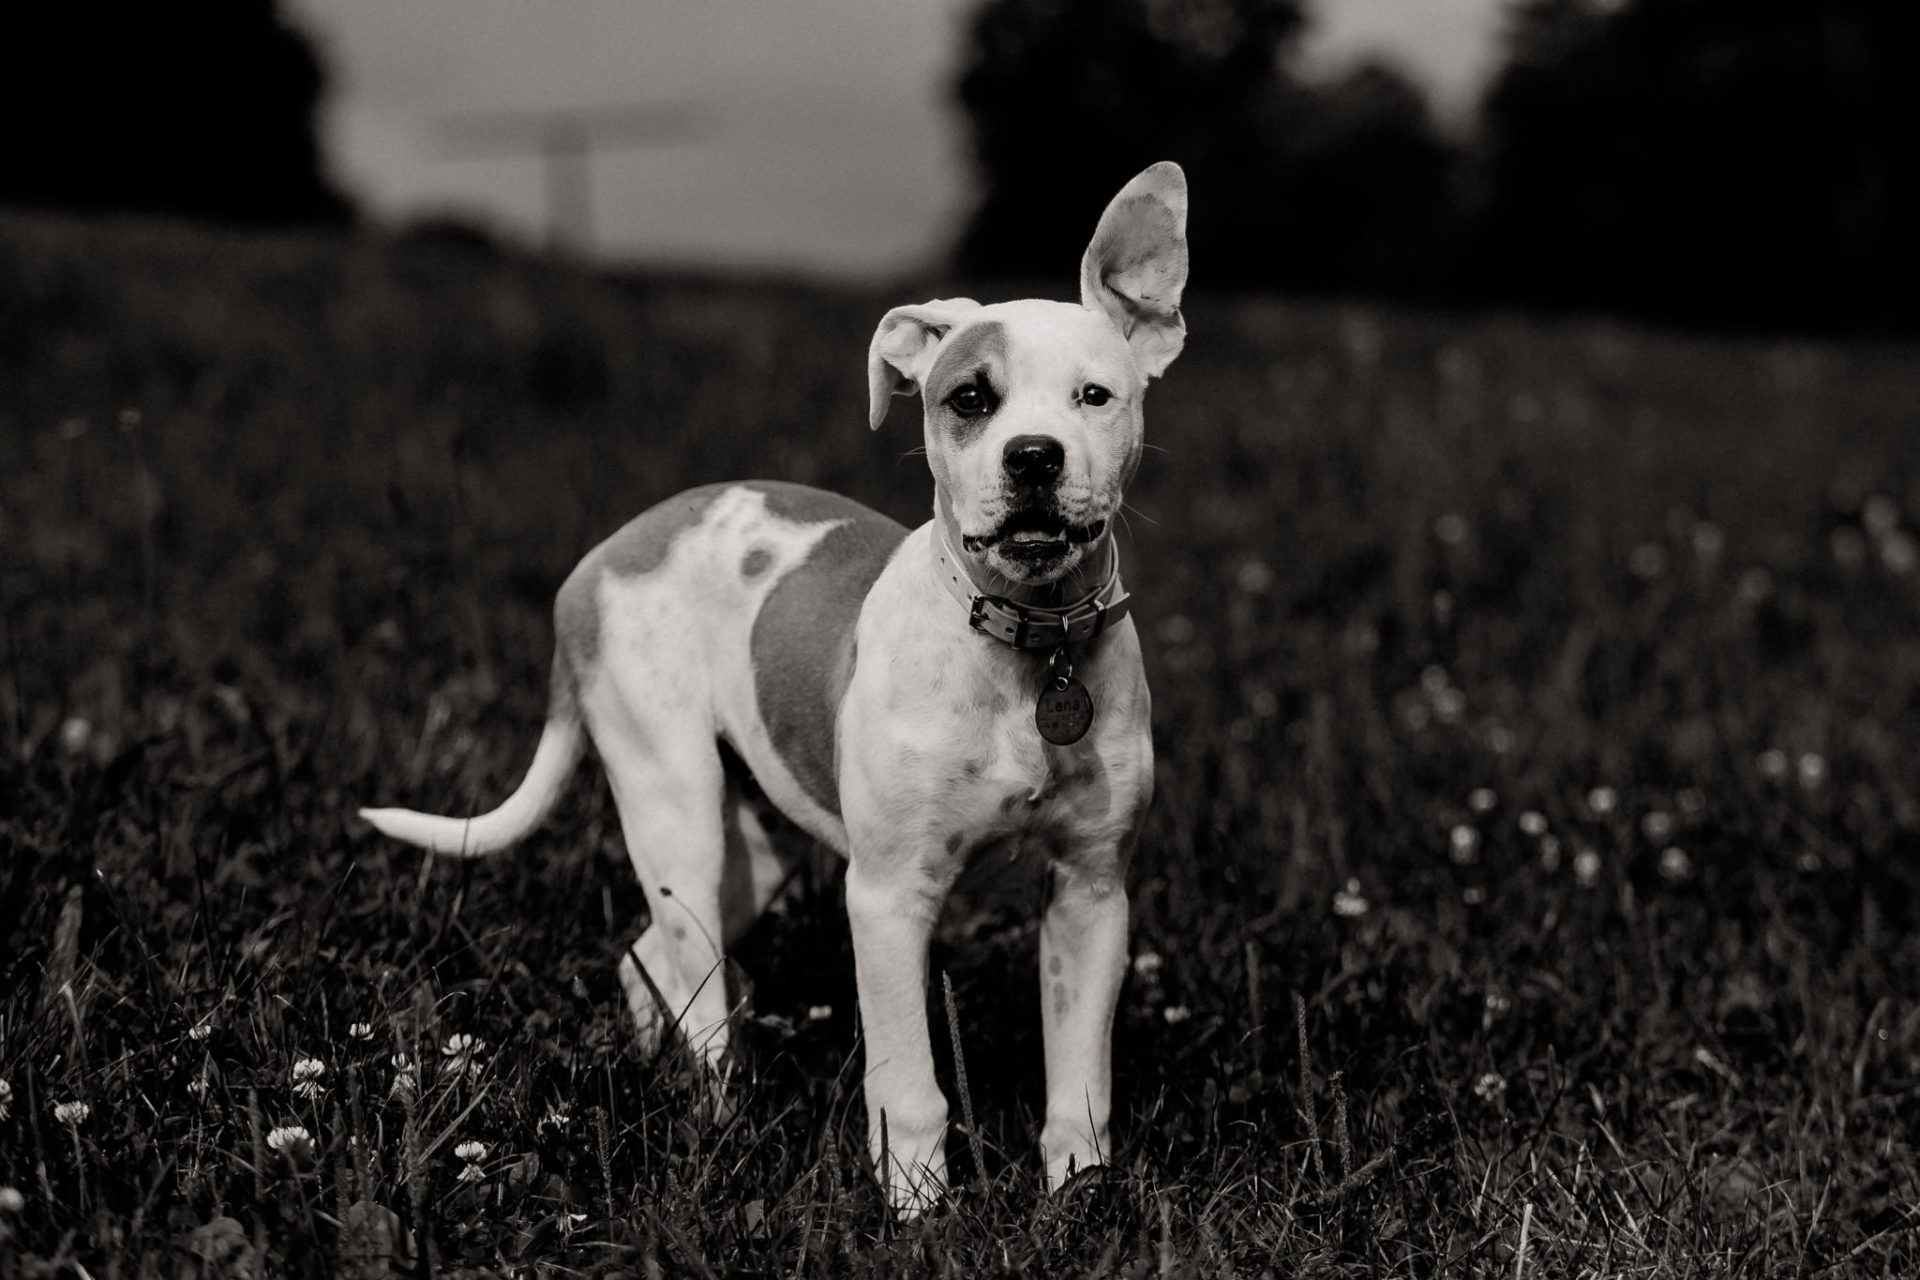 dog photographer stuttgart-home stories with pets-natural animal portraits-american bulldog puppy-proud heroes kennel-funny puppy ears